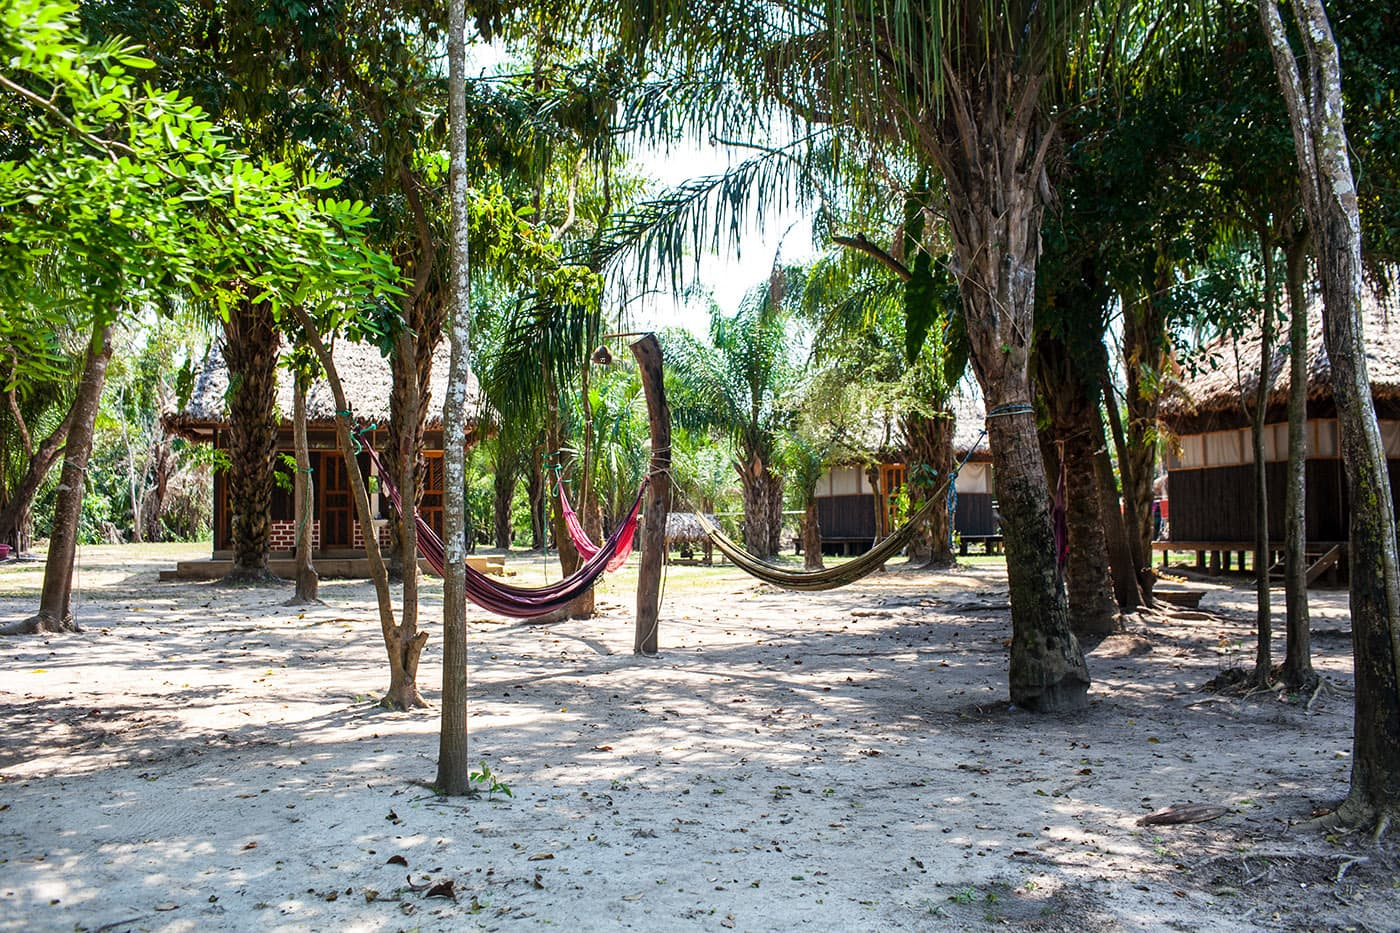 Hammocks - The Pampas in the Bolivian Amazon